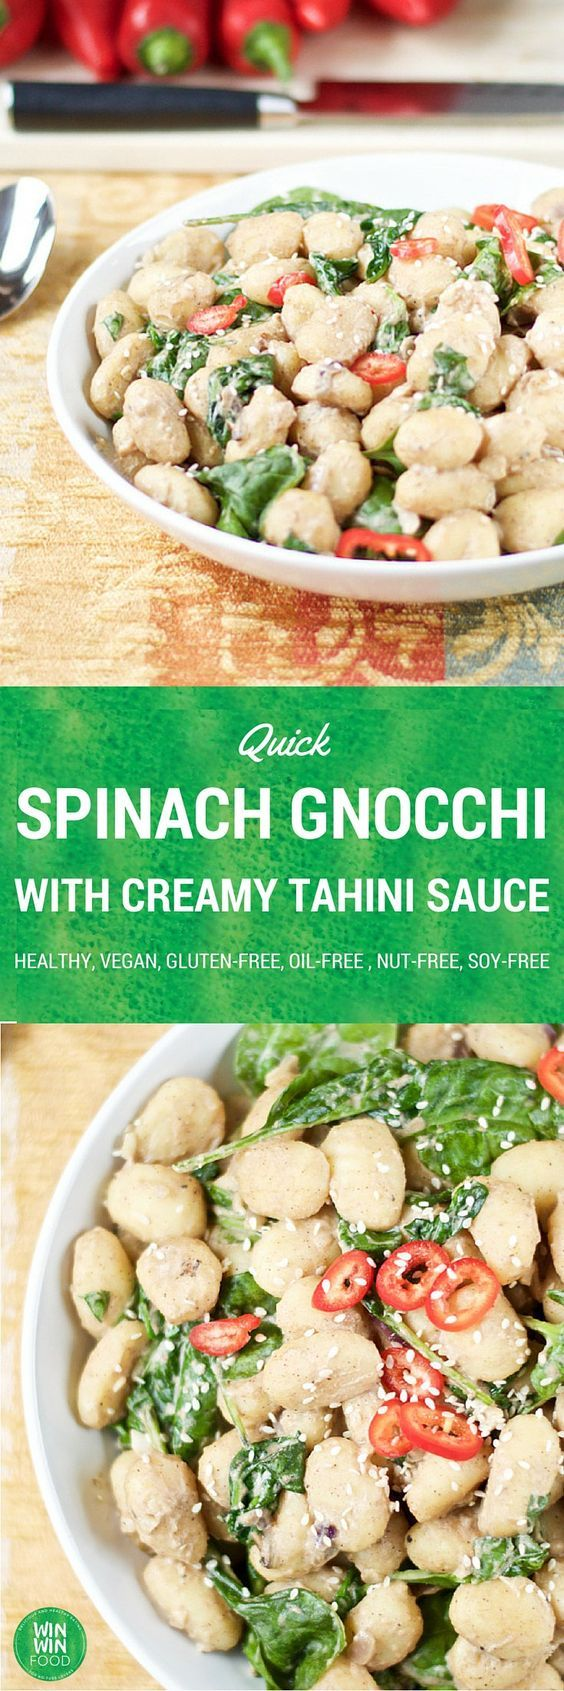 Quick Spinach Gnocchi with a Creamy Tahini Sauce |WIN-WINFOOD.com #healthy #vegan #oilfree with a #glutenfree option